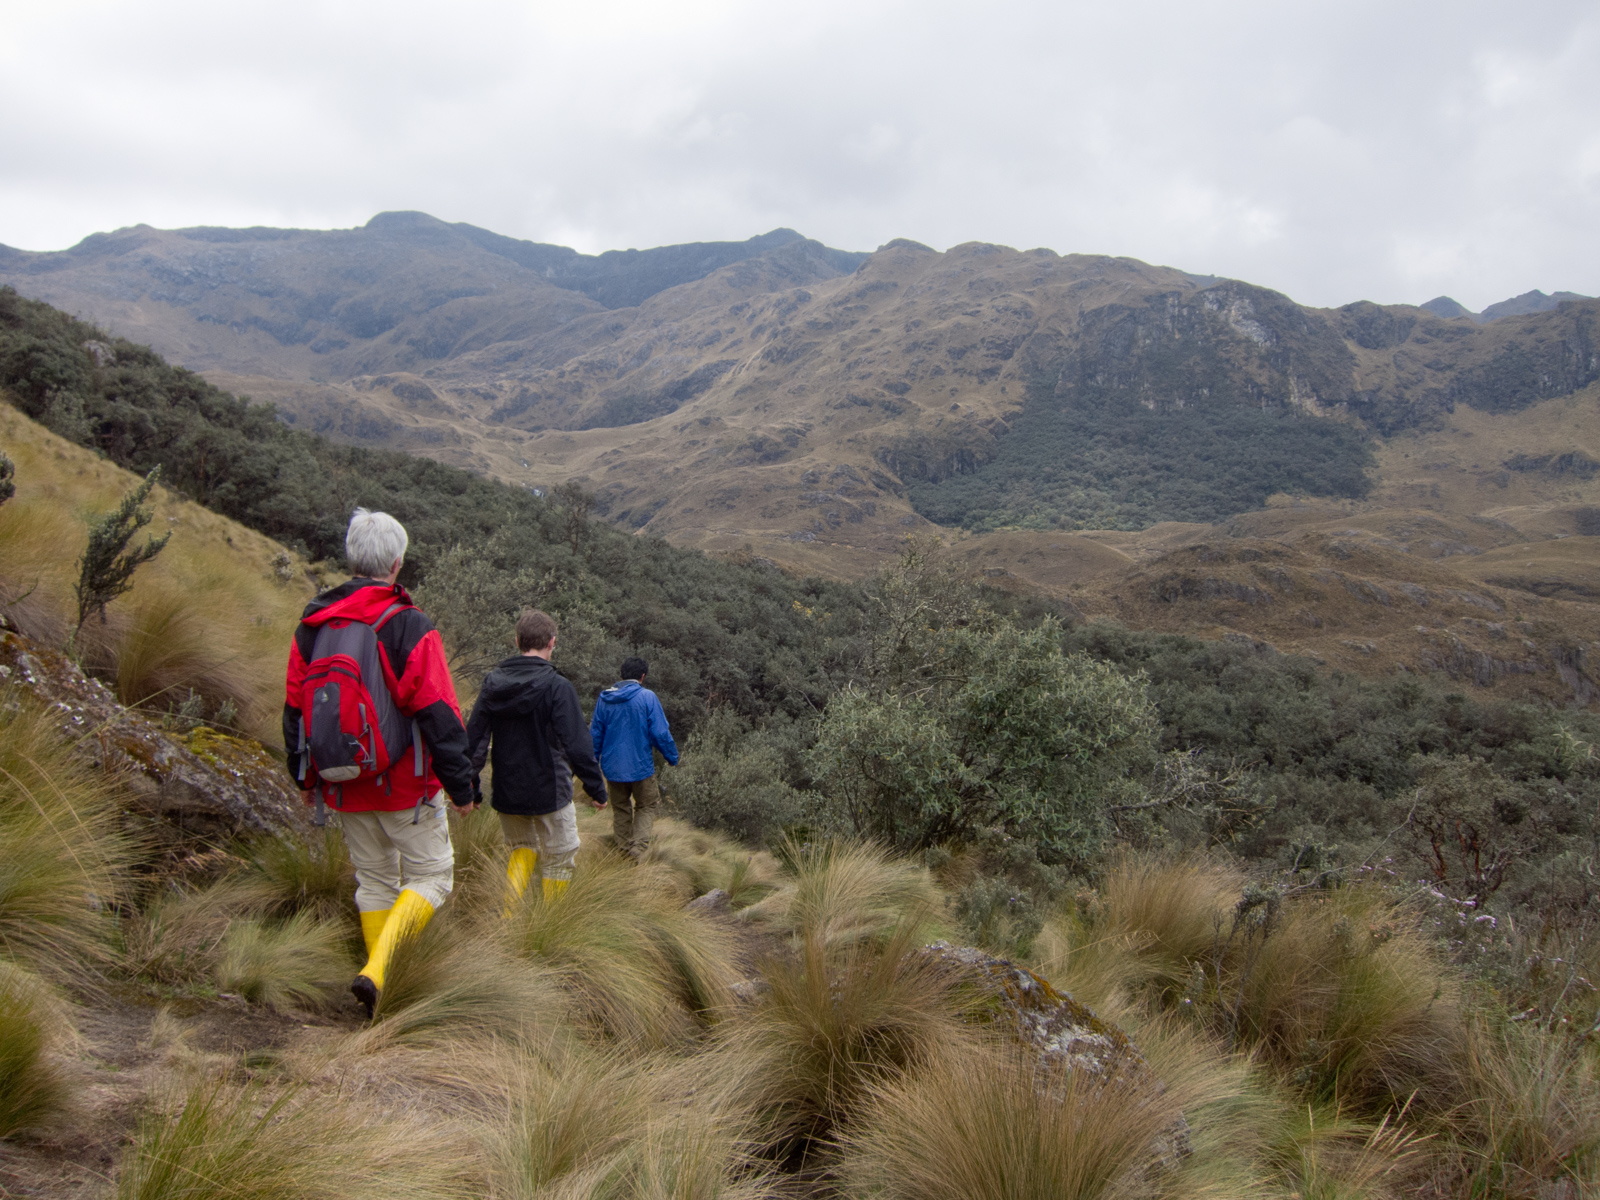 Walking toward a forest, something you rarely see at 4,000 meters